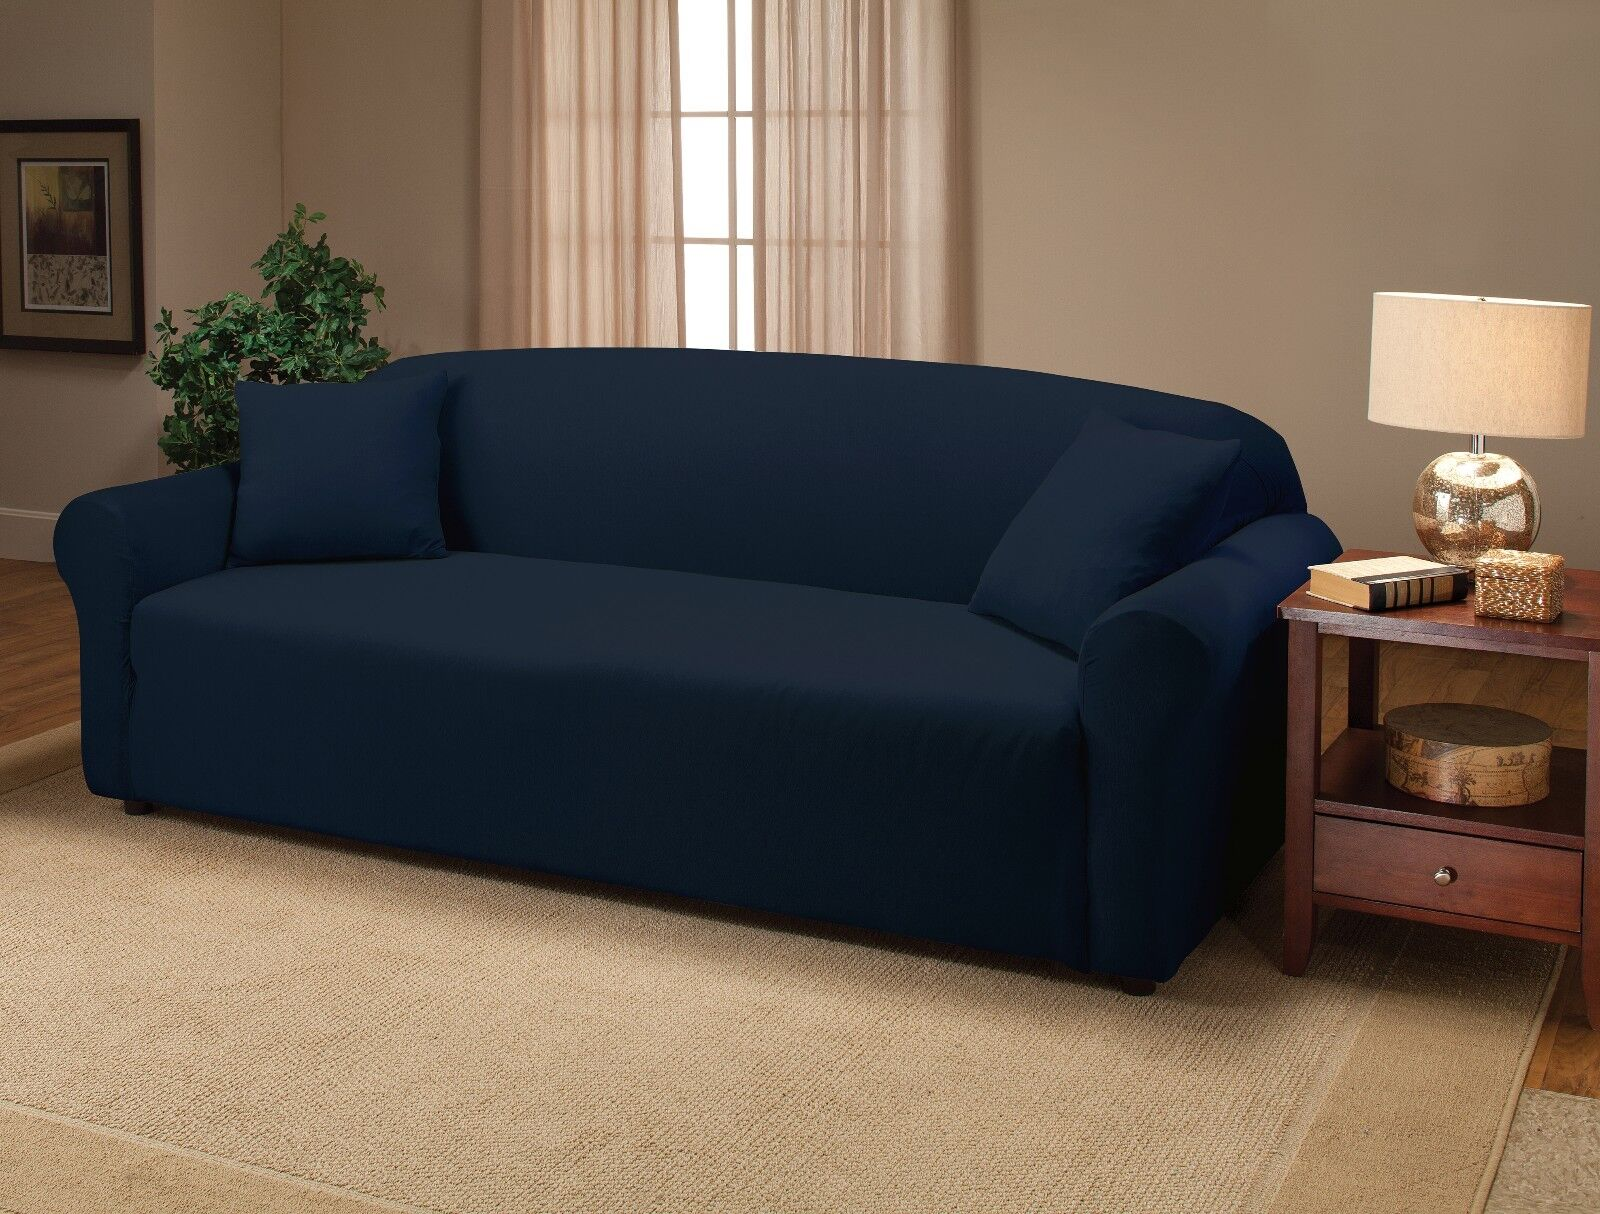 Sofa And Chair Covers Navy Blue Jersey Couch Stretch Slipcover Furniture Covers